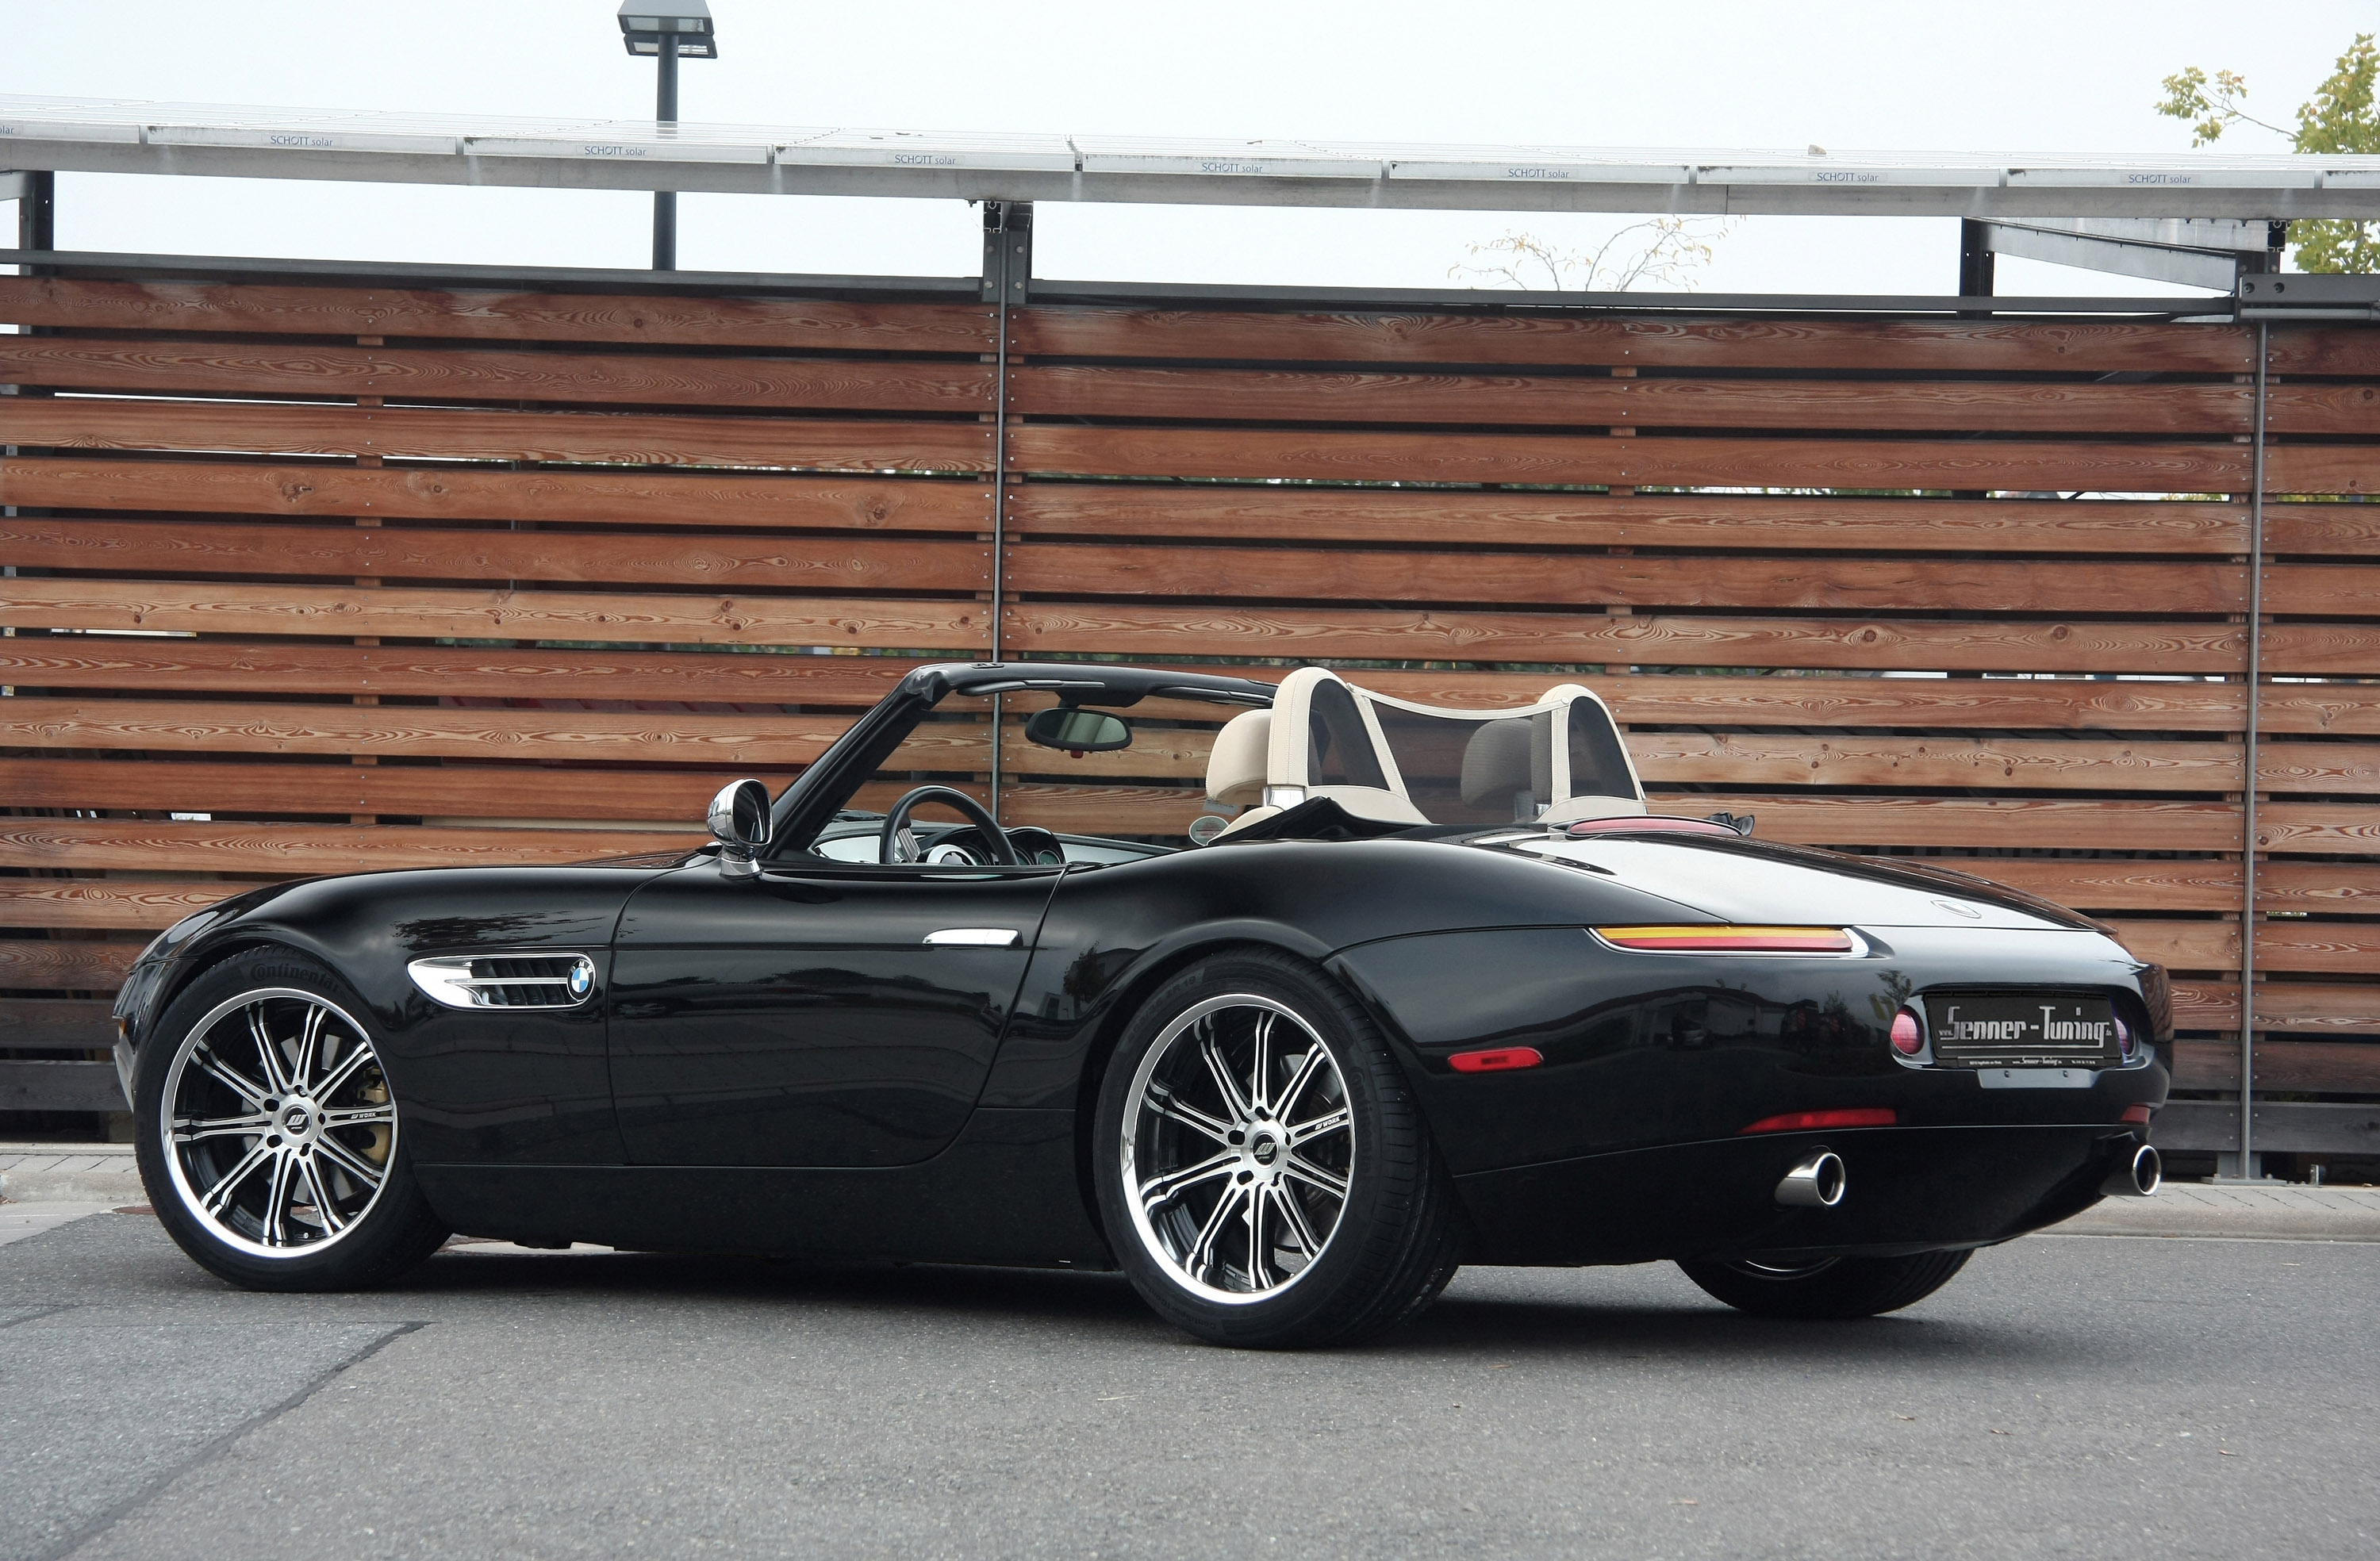 The Bmw Z4 Restoring The Cool Of Bmw Z And The Modern